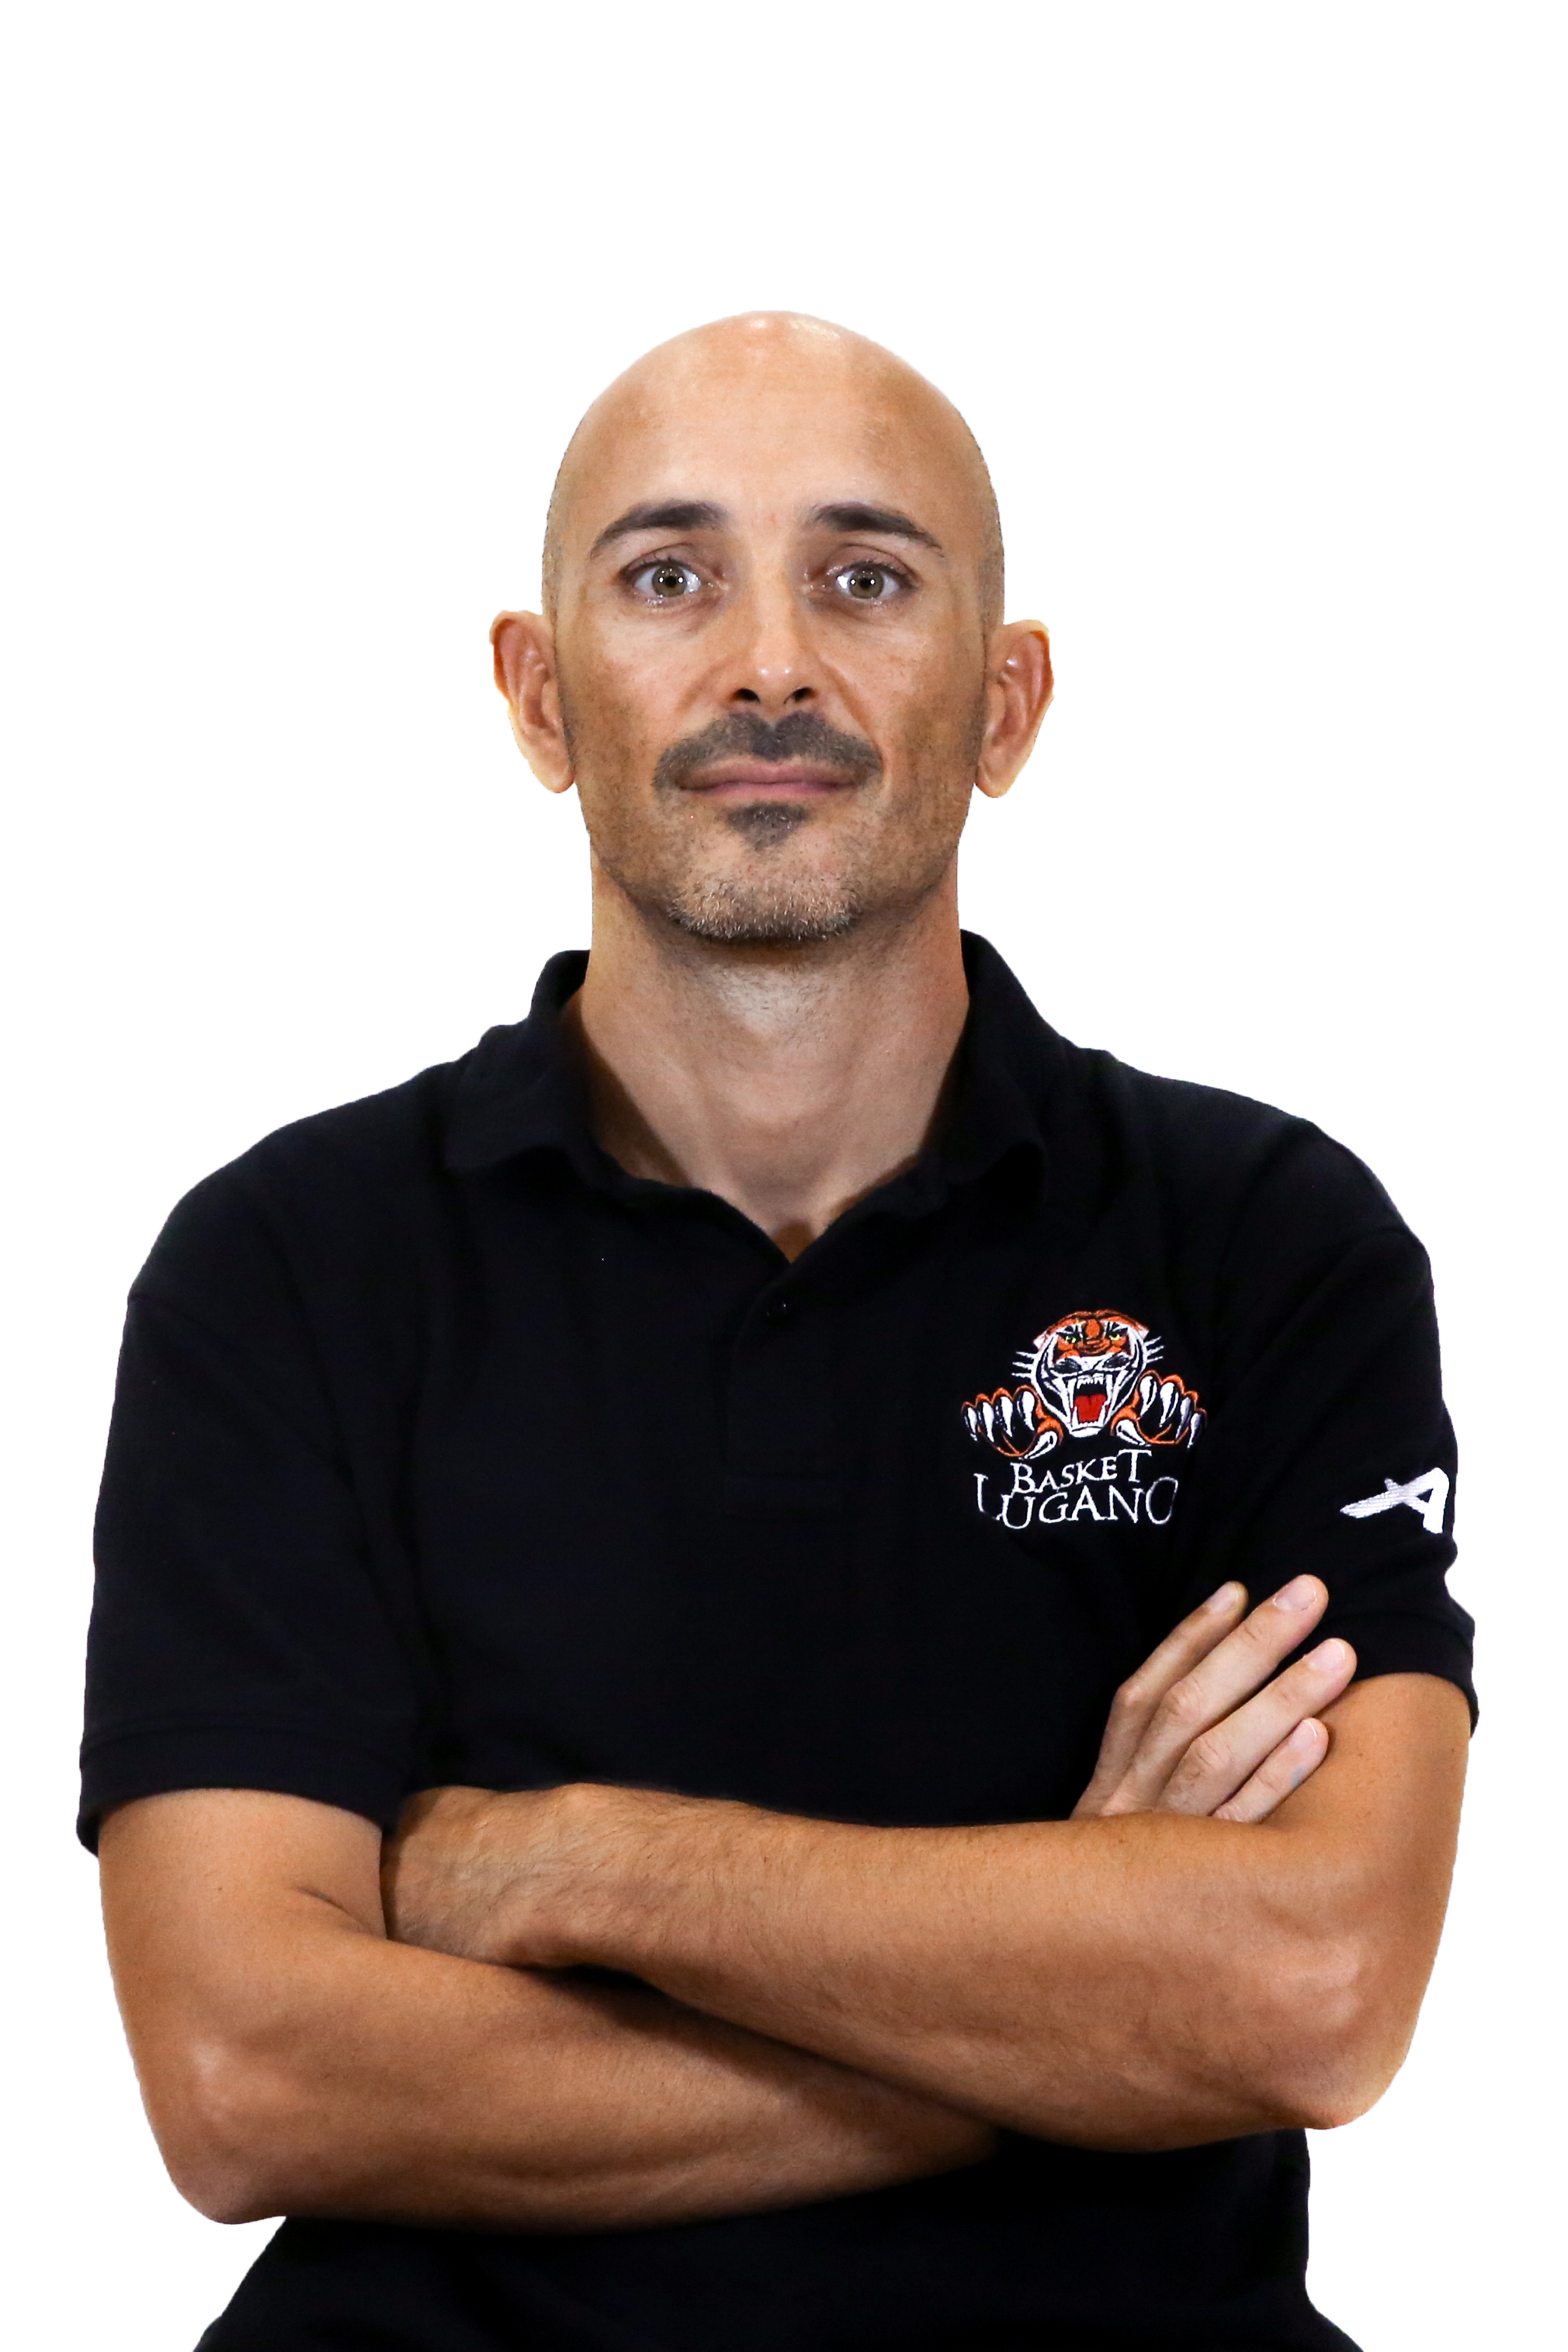 https://www.basketlugano.com/wp-content/uploads/2019/10/Salvatore.png